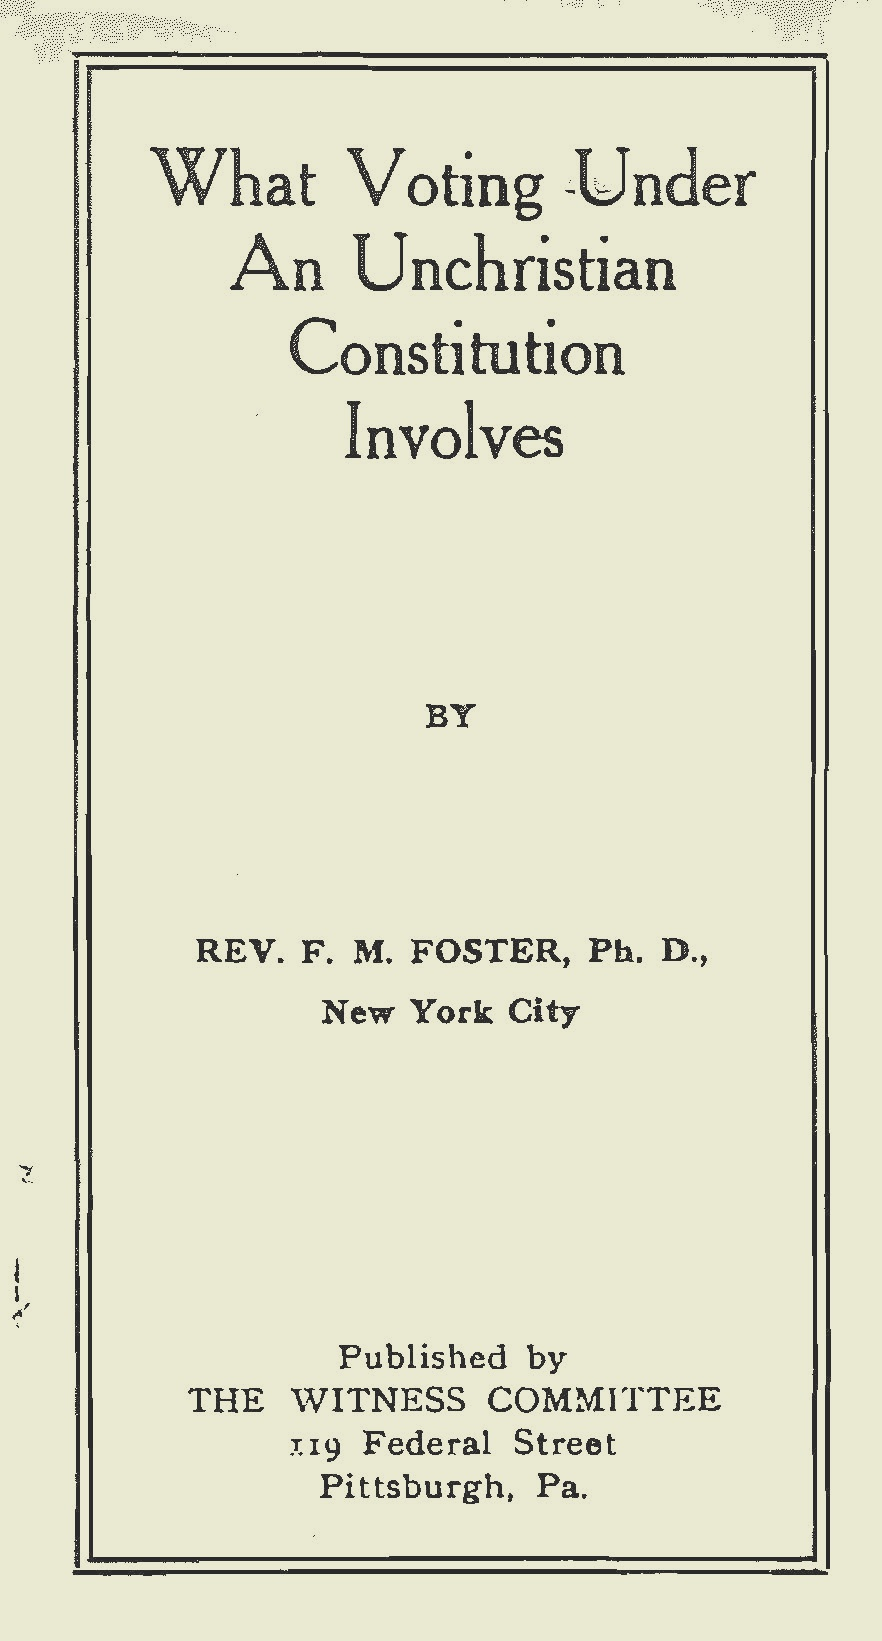 Foster, Finley Milligan, What Voting Under an Unchristian Constitution Involves Title Page.jpg